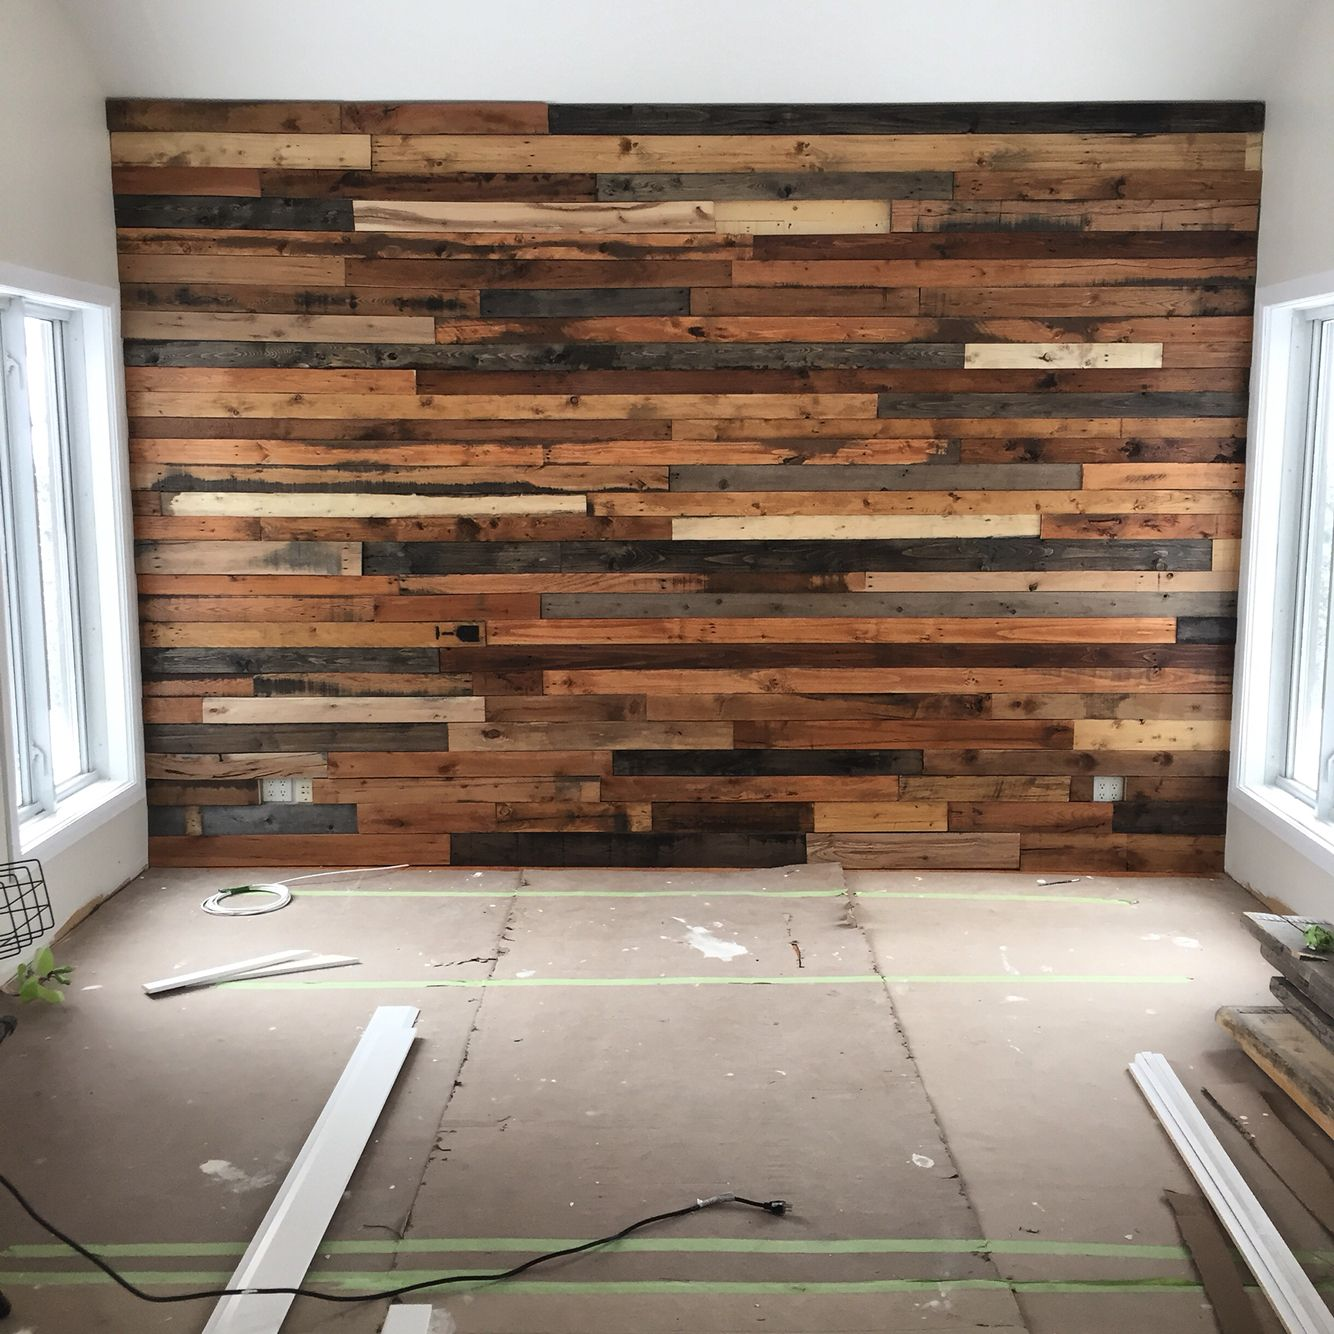 Diy mur de planche de palette wood grange pinterest for Idee deco lambris mural